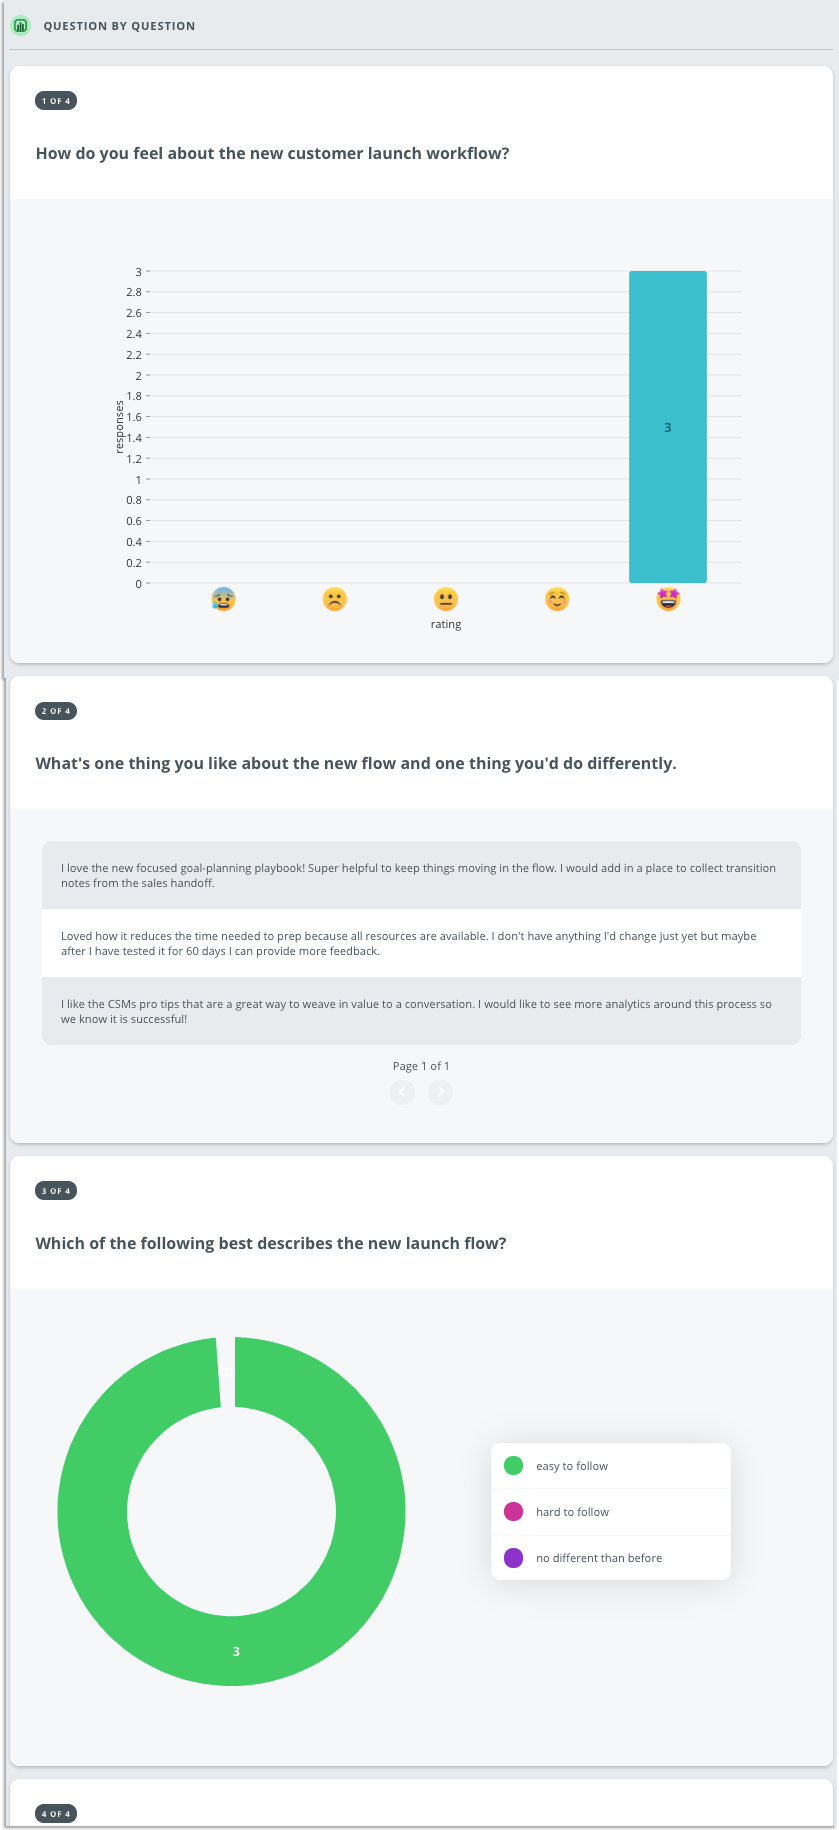 A question by question breakdown is shown for a example survey results page, showing results for emoji scale, text response, and numeric scale questions.